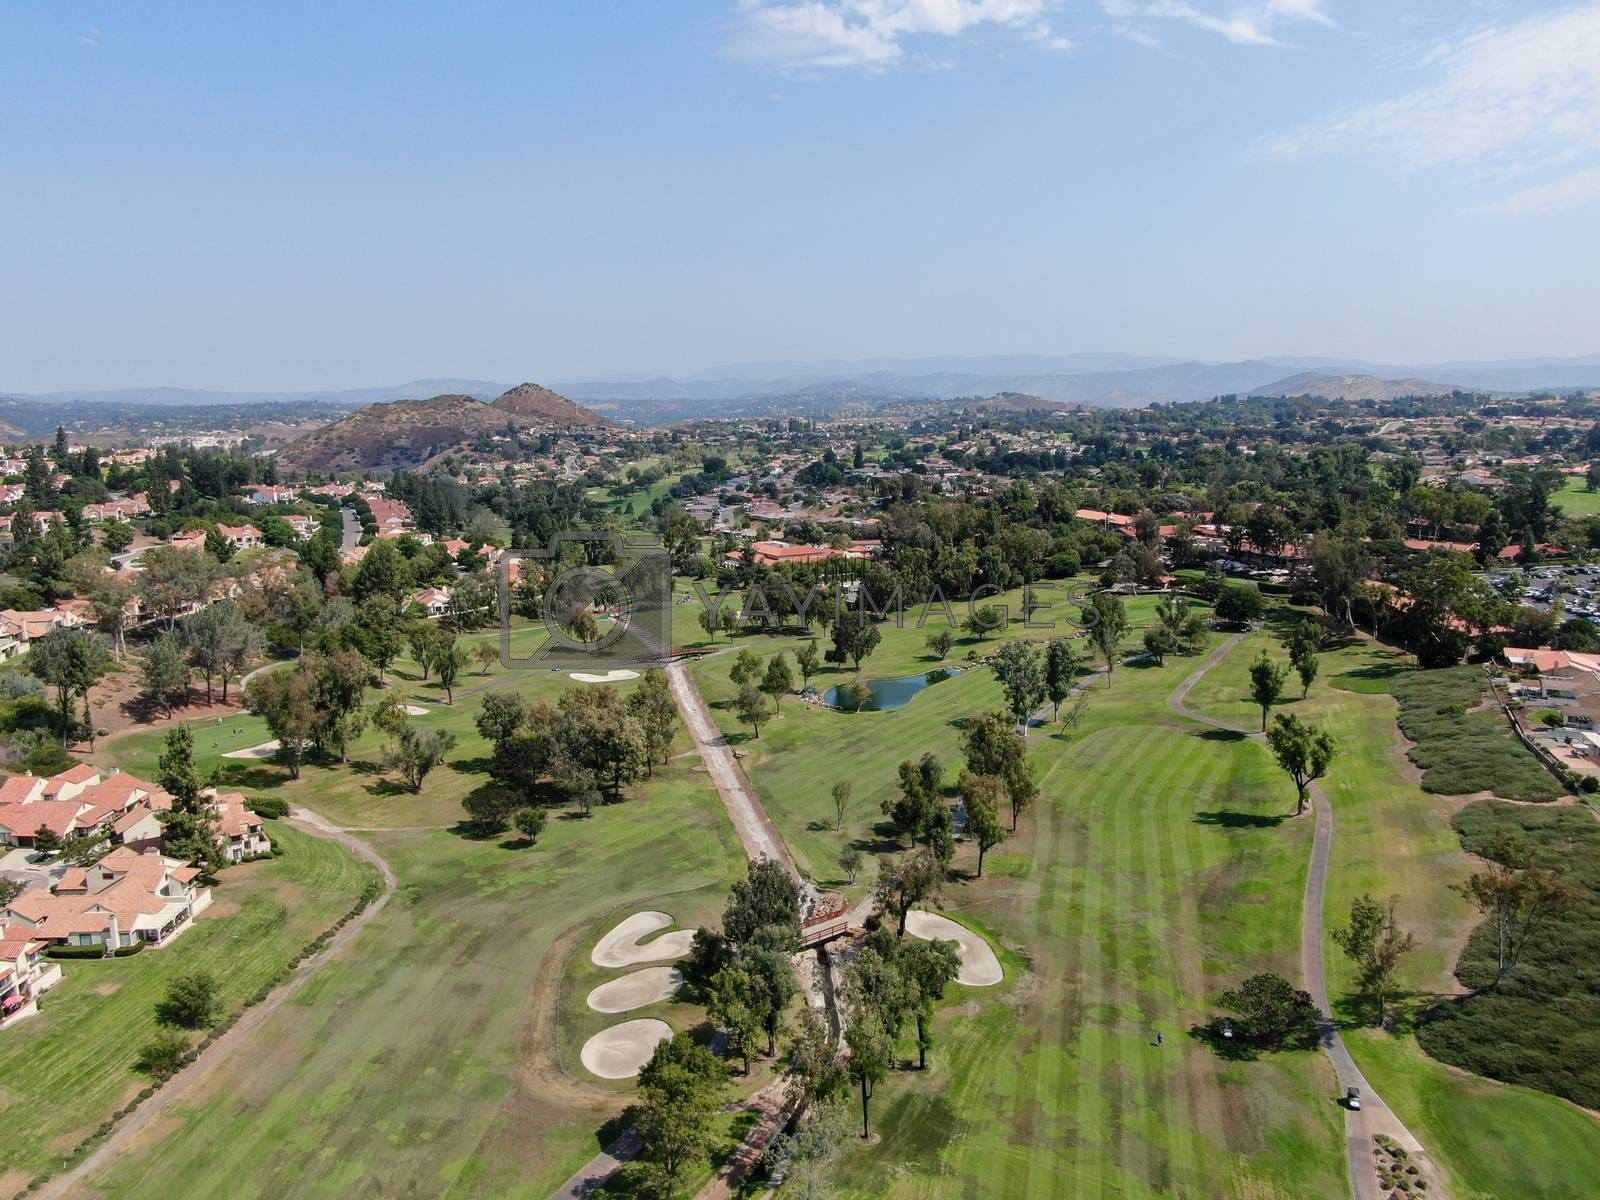 Aerial view of golf in middle class neighborhood surrounded with residential house, and mountain on the background in San Diego, South California, USA.